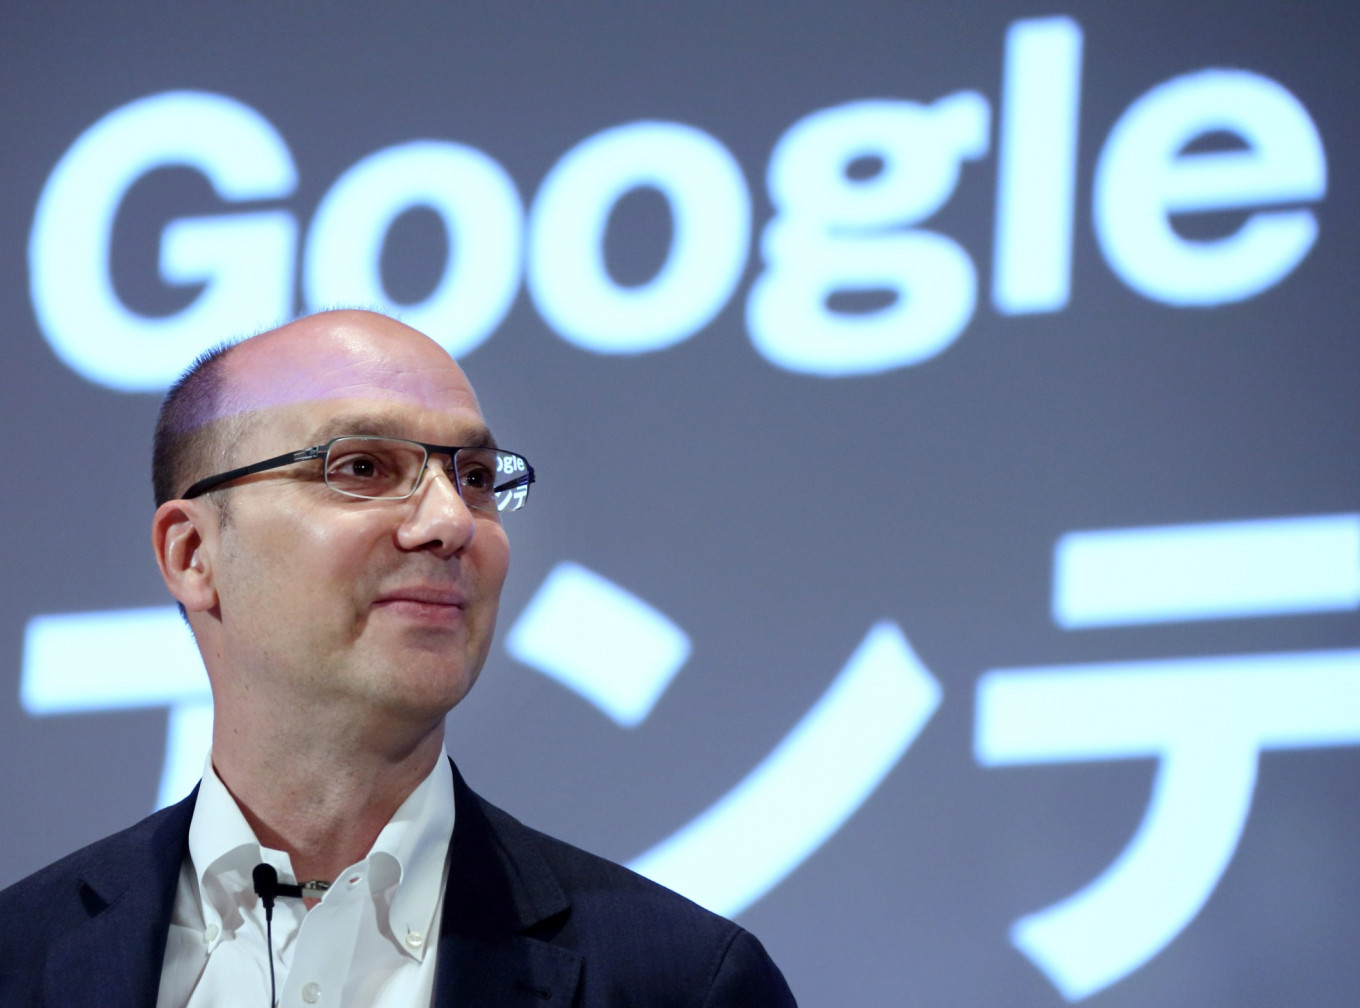 Google board sued for hushing misconduct claims about Rubin